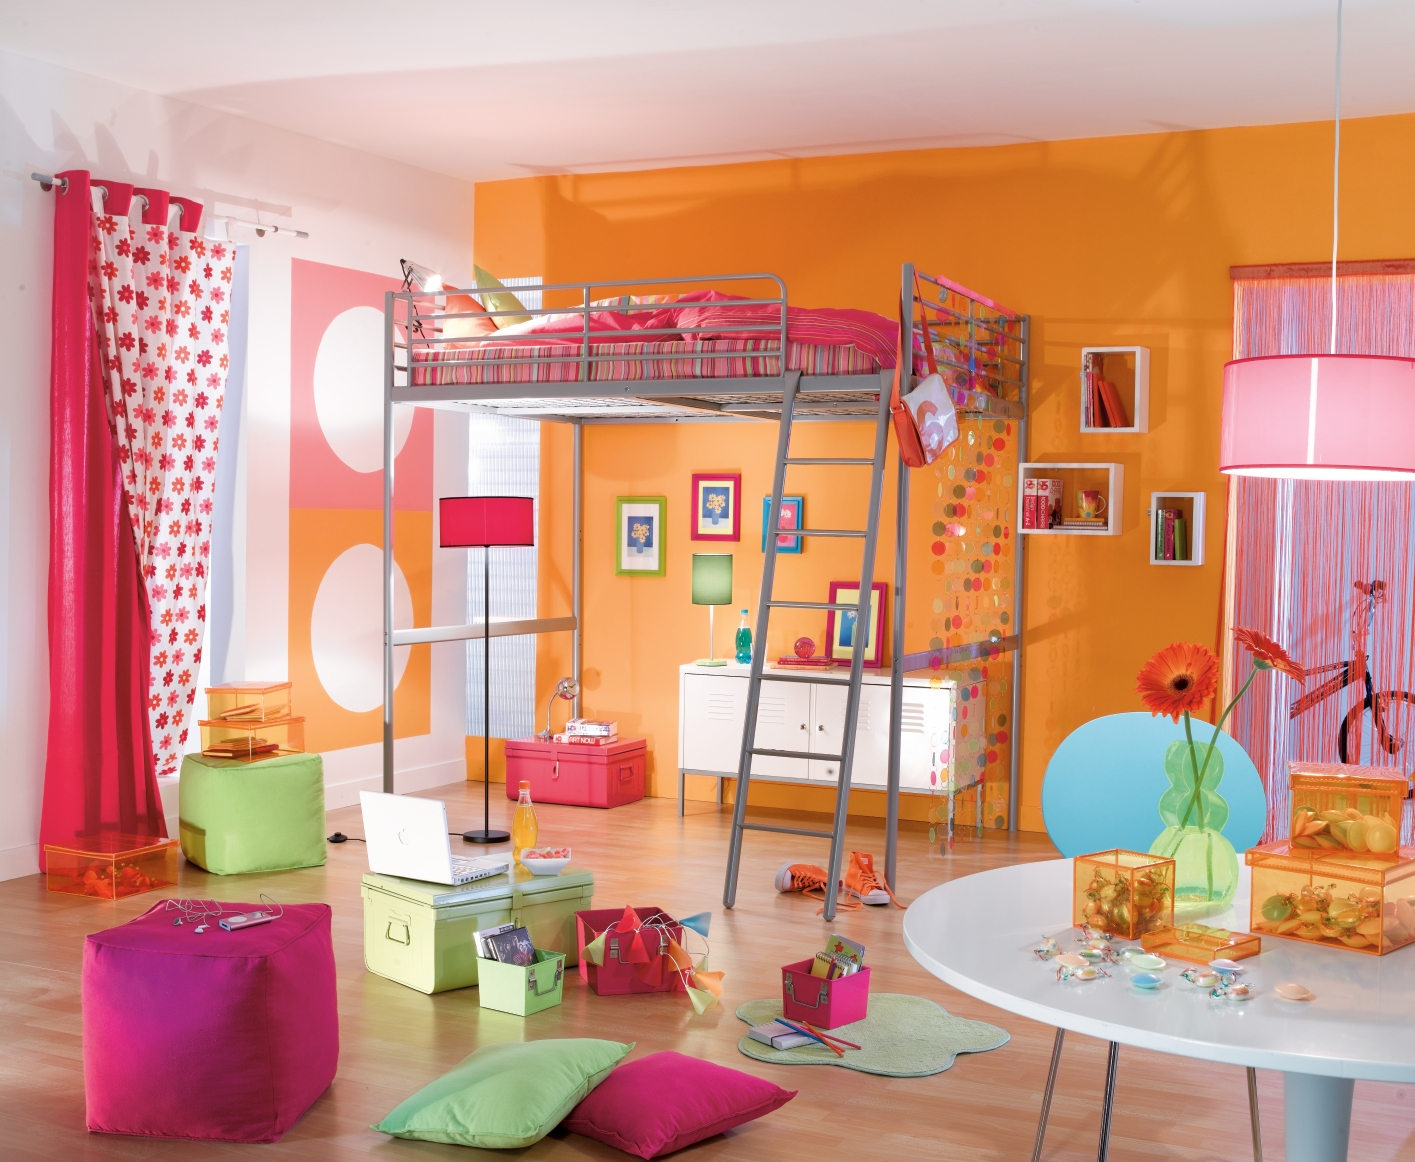 D co chambre fille orange for Decoration chambre fille